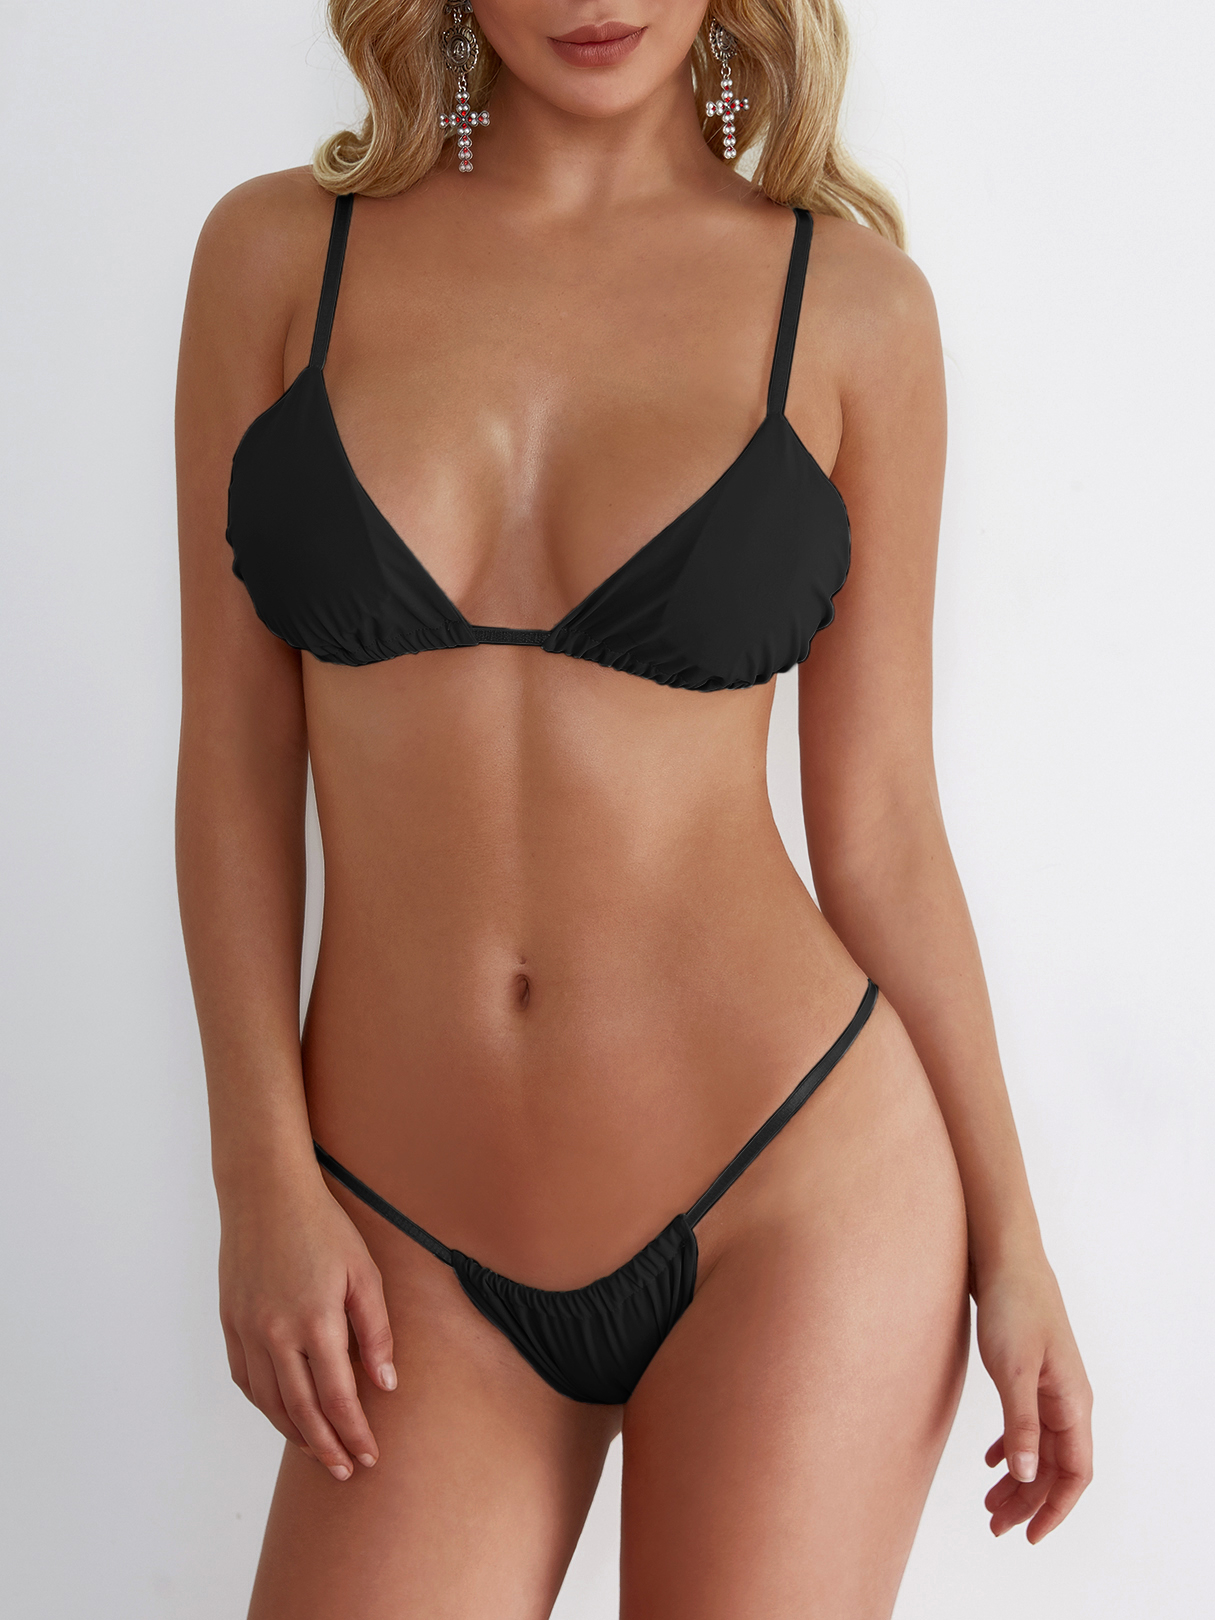 Black Backless Halter Thin Elastic Strap Design Bikinis Swimwear black backless halter thin elastic strap